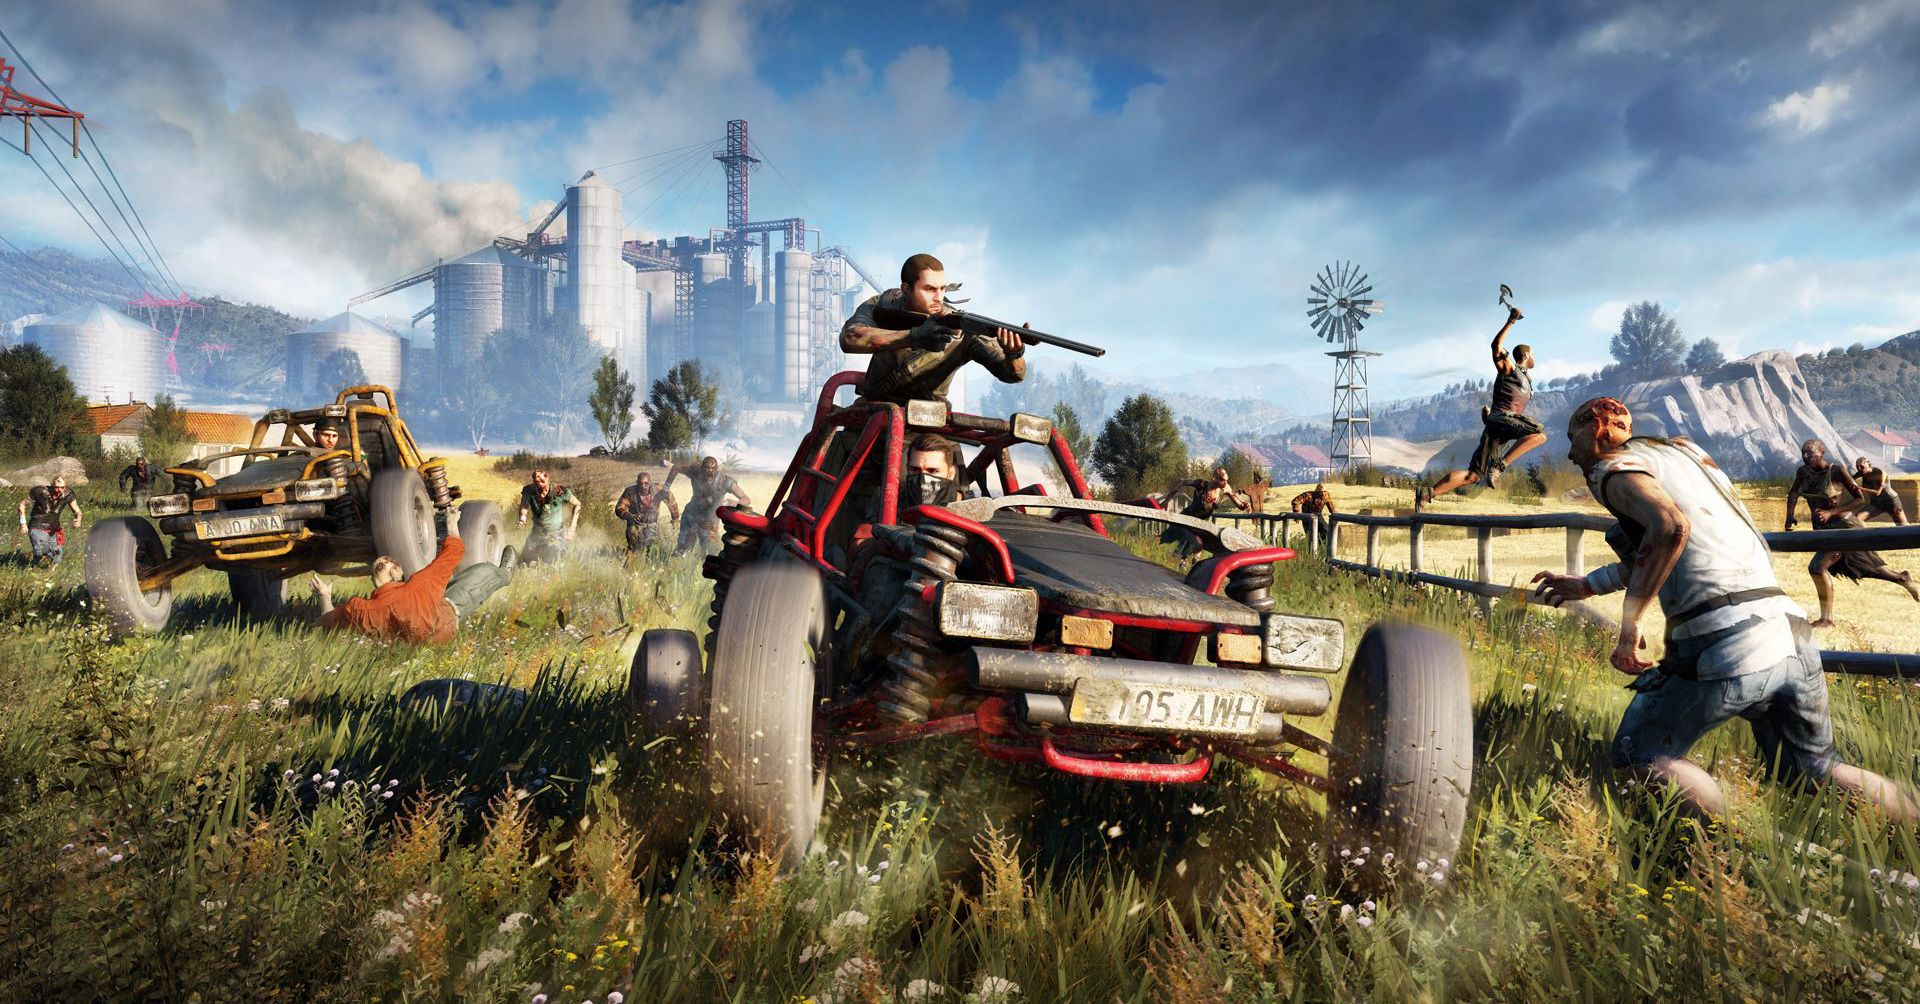 Best Of - Top 17 Co-Op Games for PC & Consoles (Xbox One, PS4